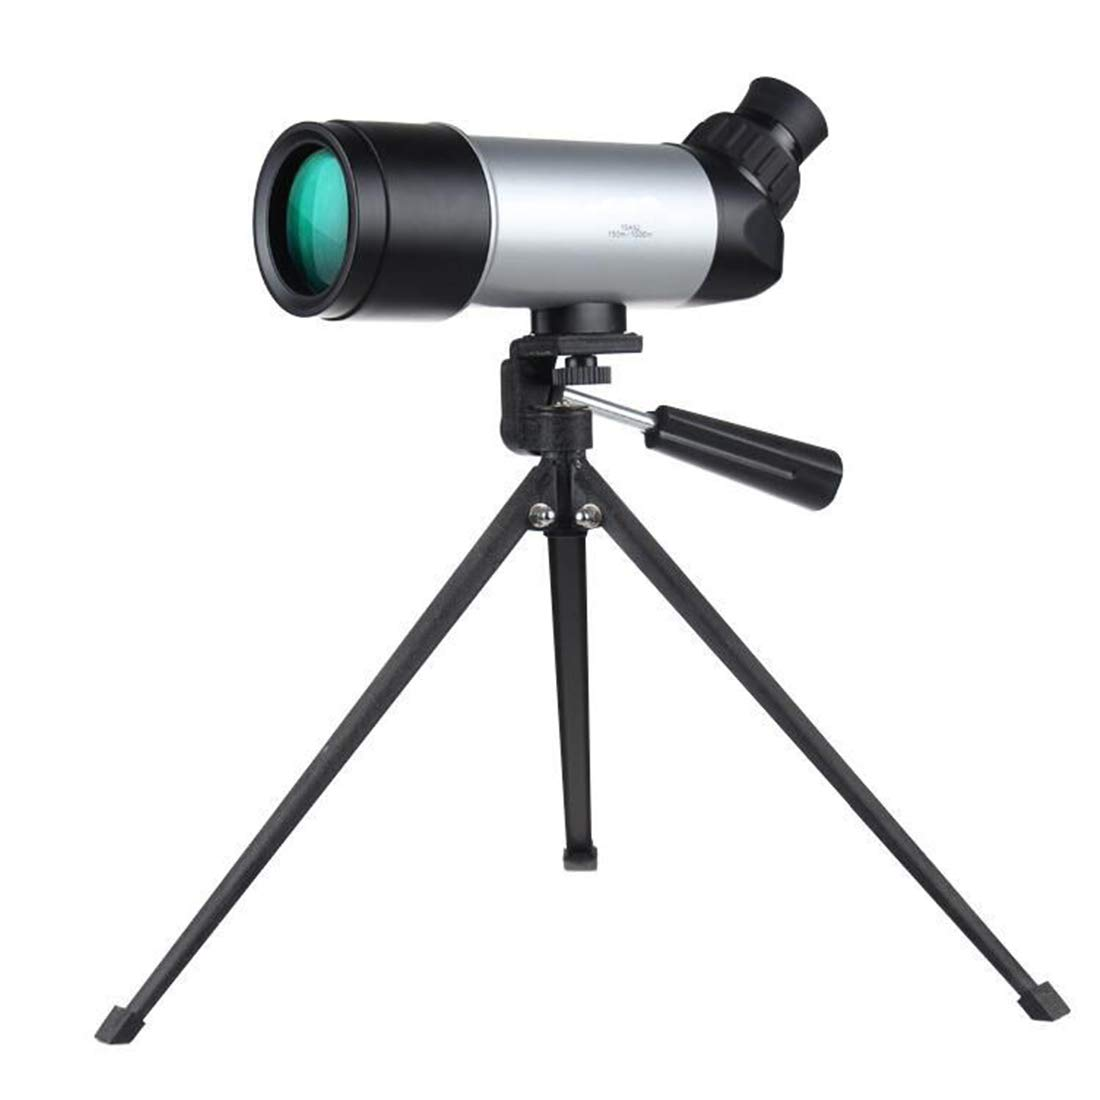 FELICIGG 15x52 Monocular Telescope for Bird Watching Camping,Equipped with Tripod,Wide-angle Objective Monocular for Adult Kids